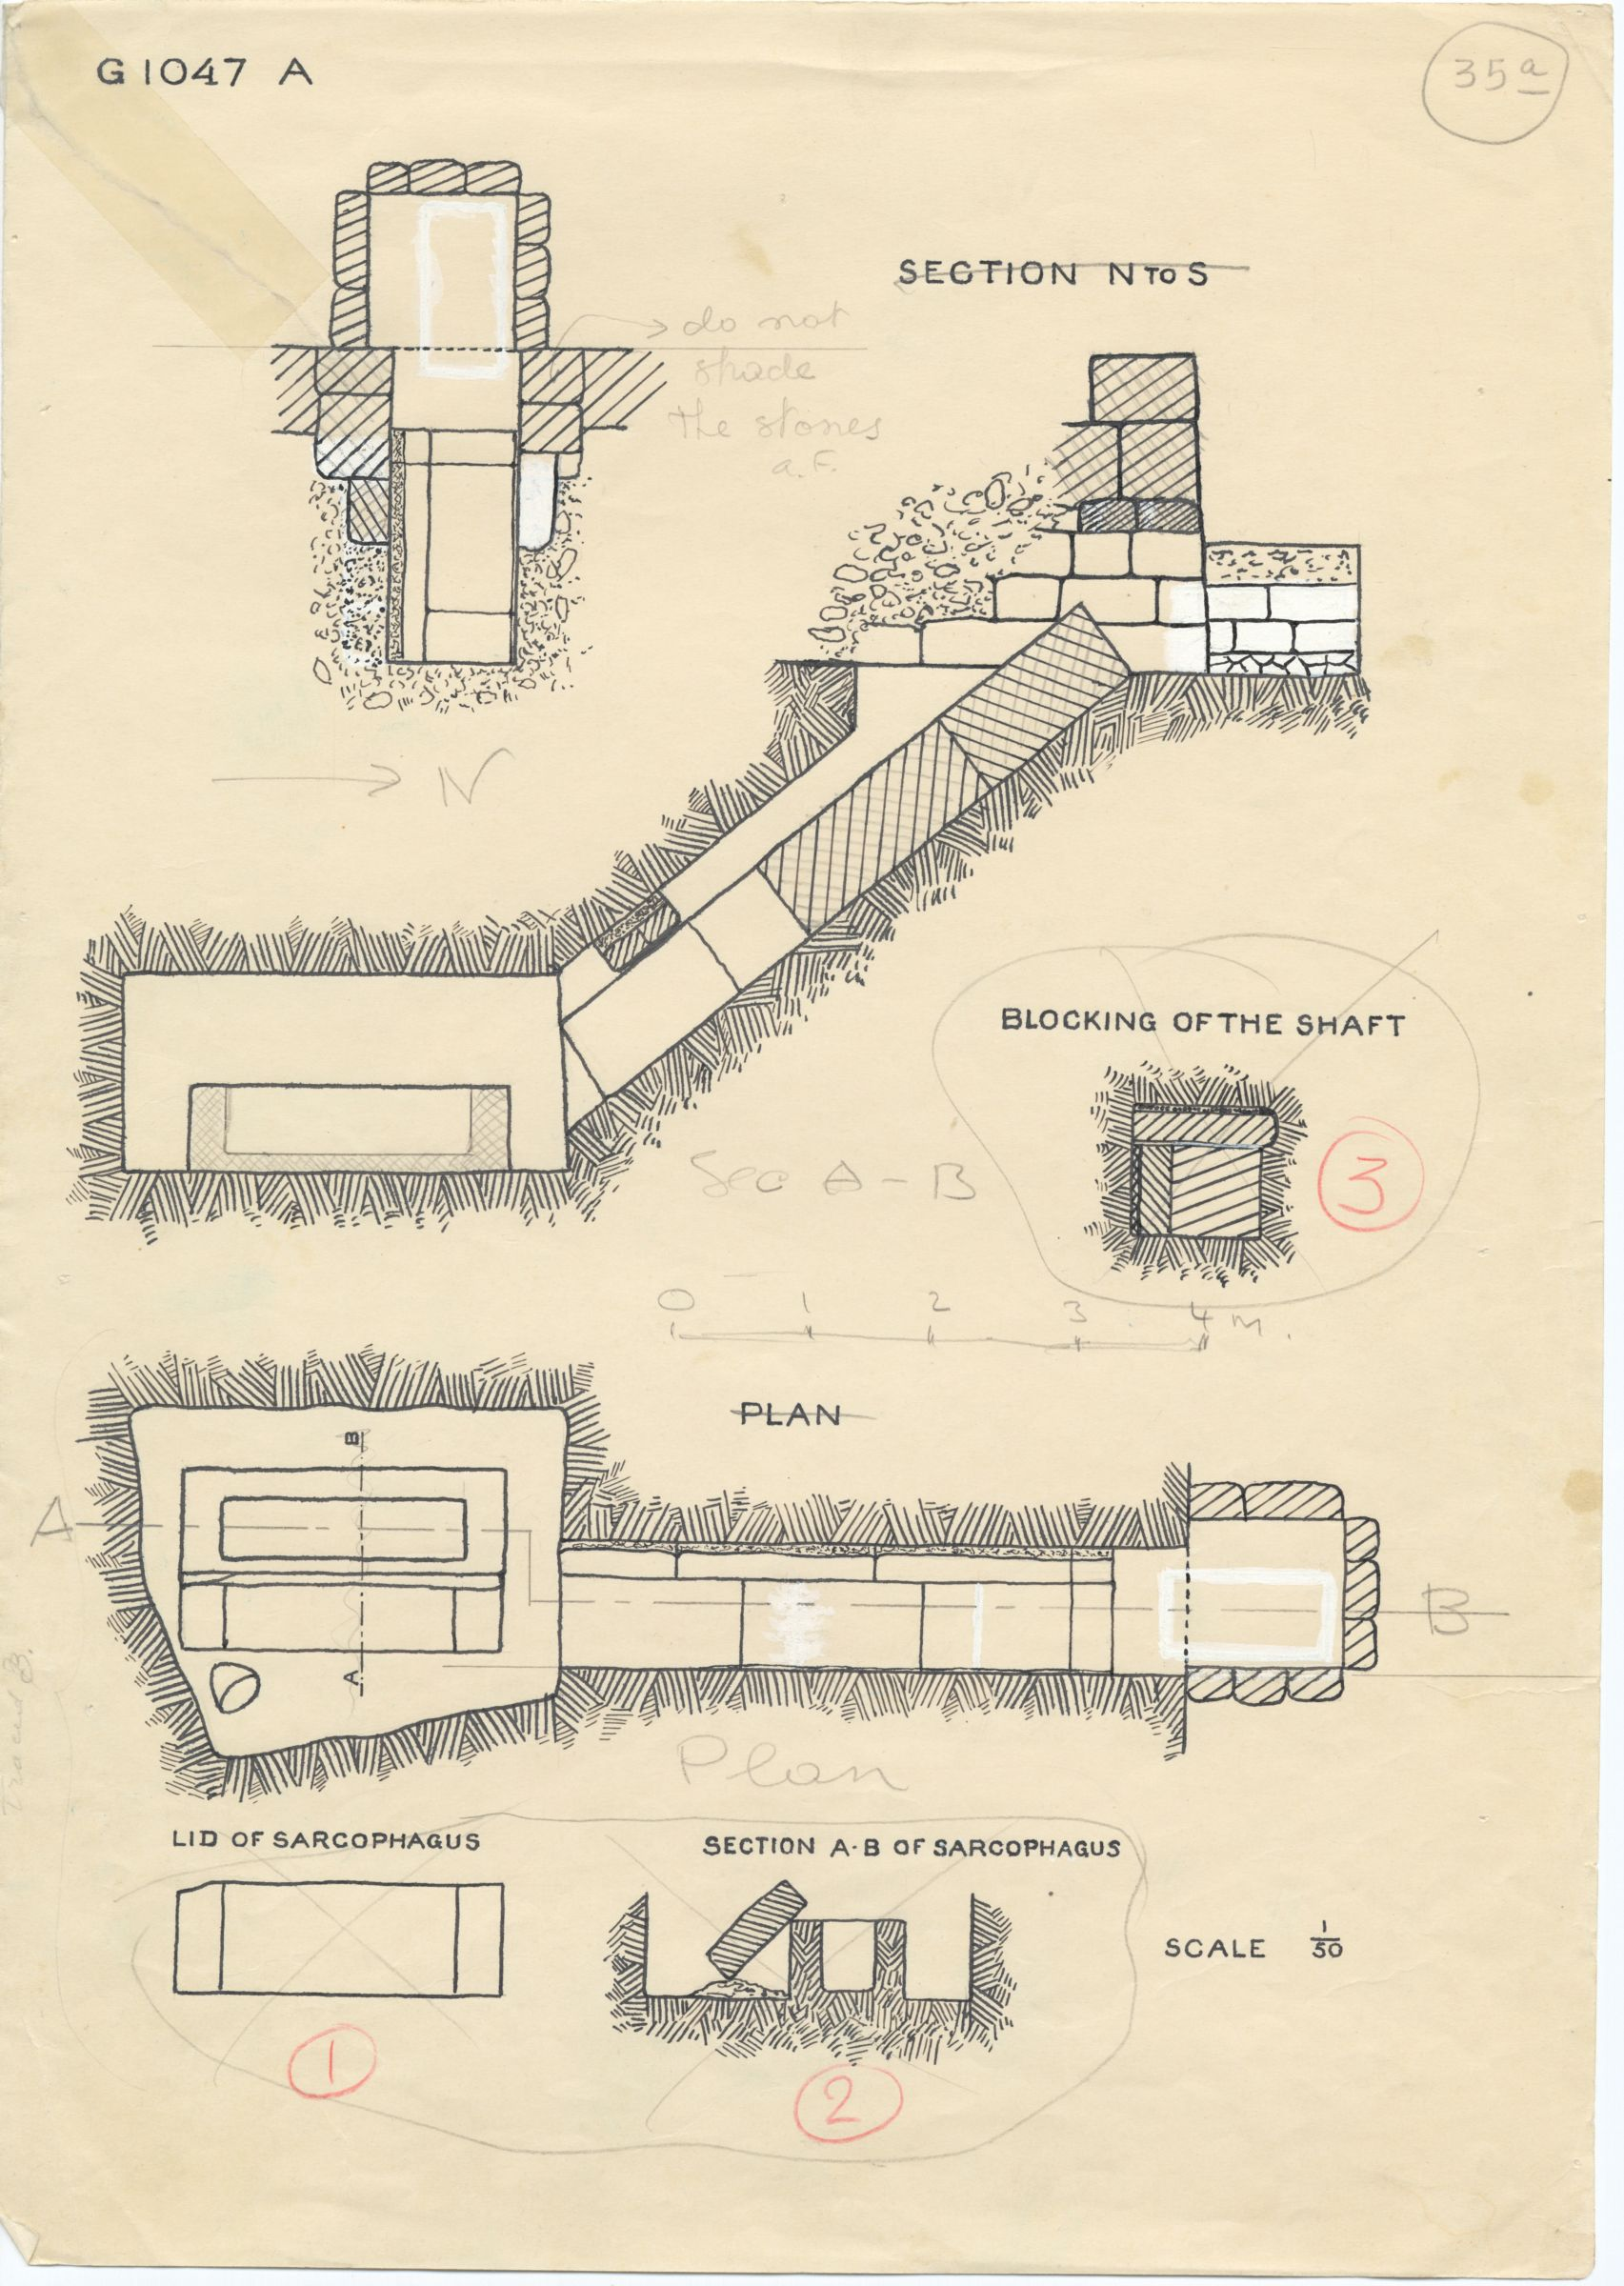 Maps and plans: G 1047, Shaft A